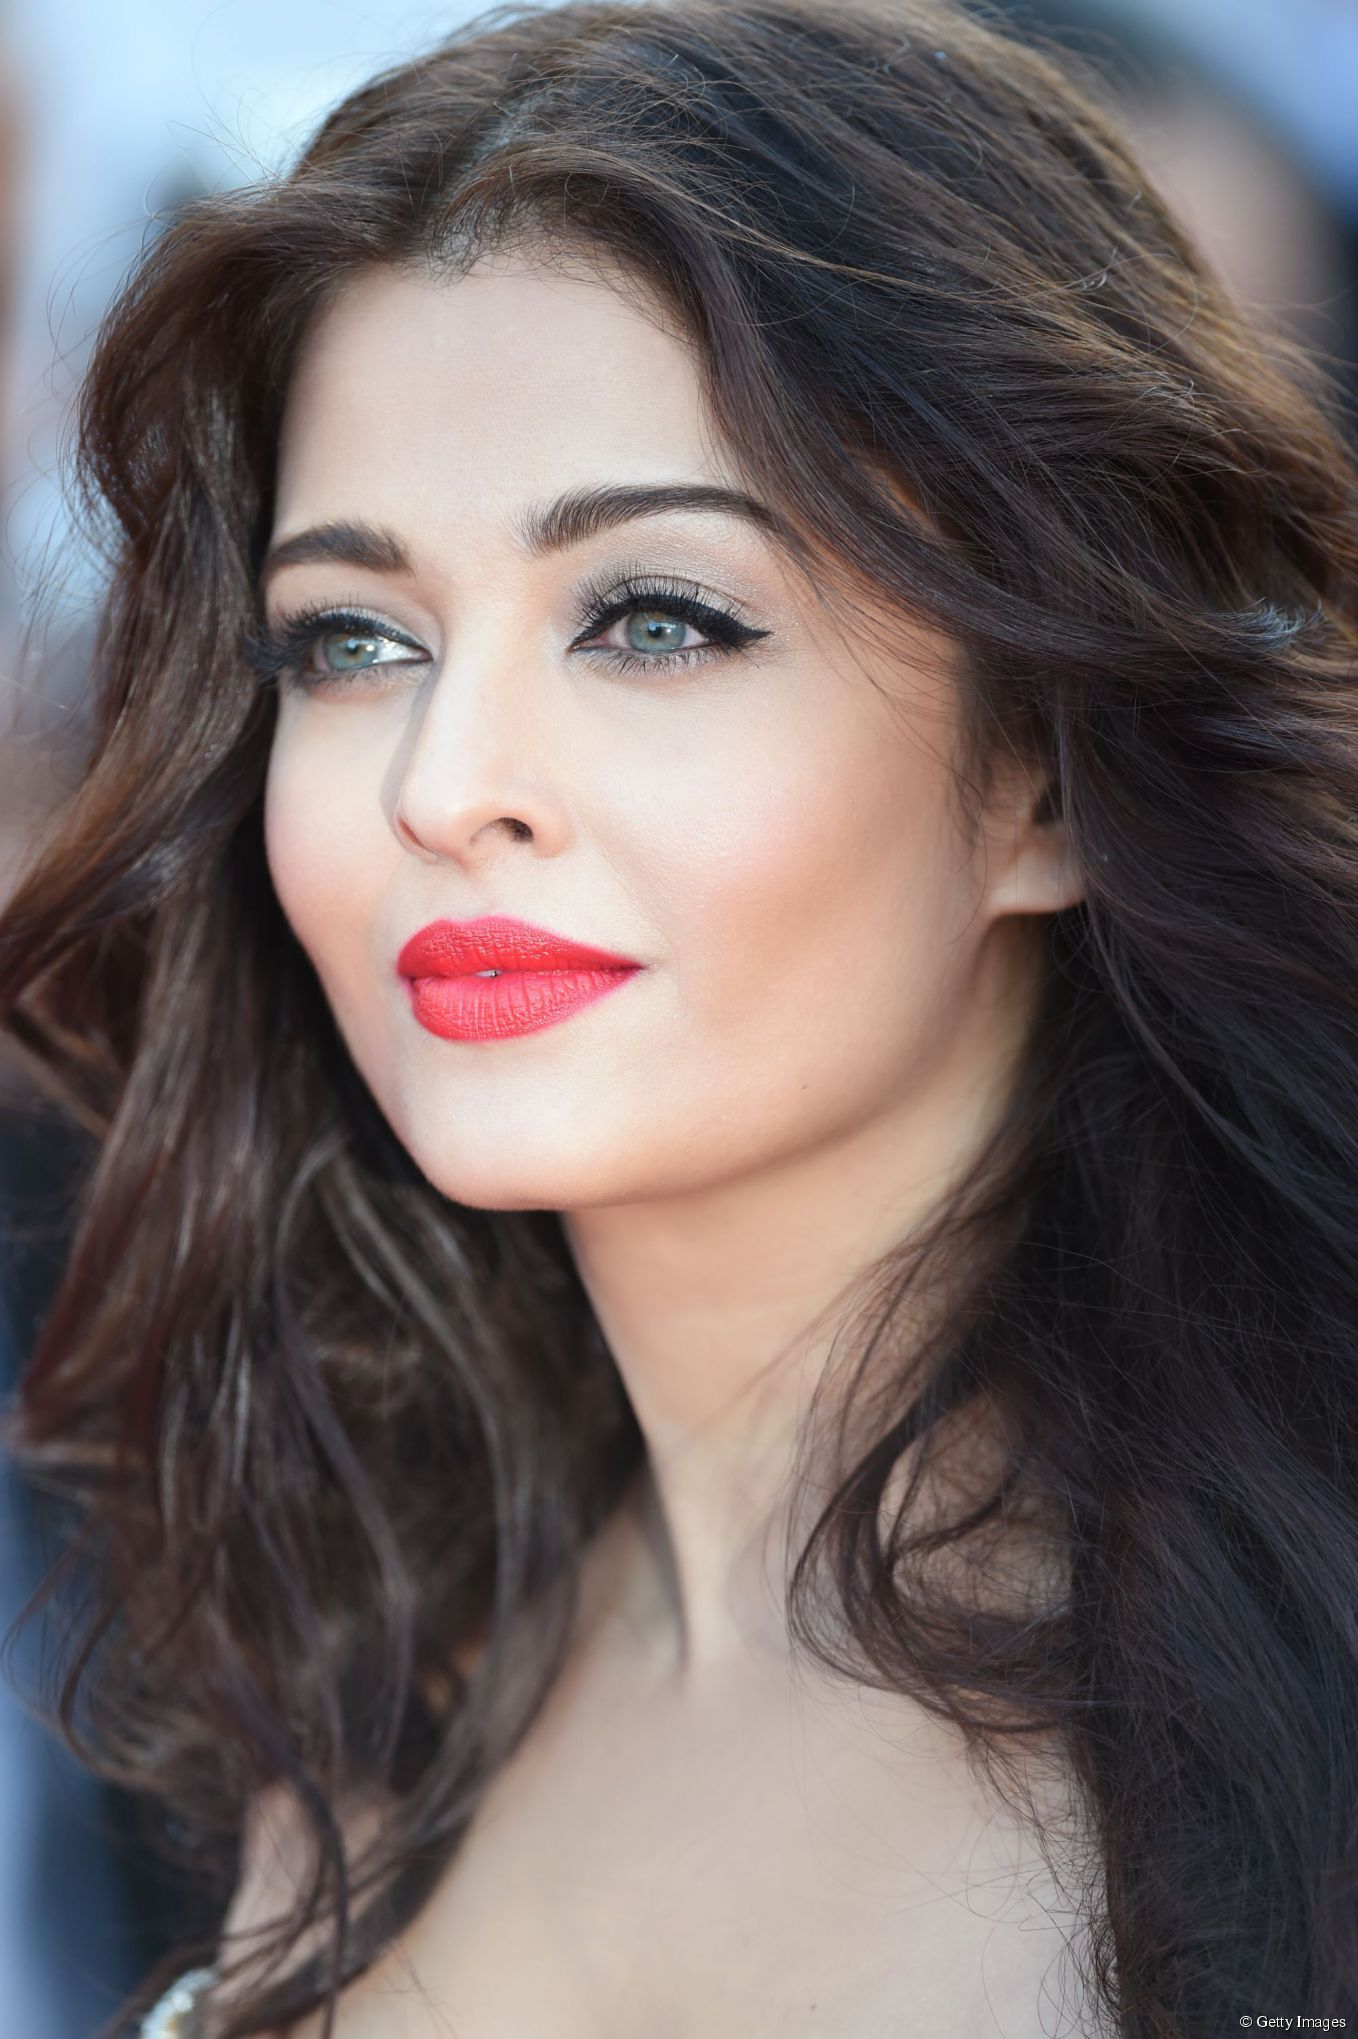 To acquire Contact rai Aishwarya lenses pictures trends